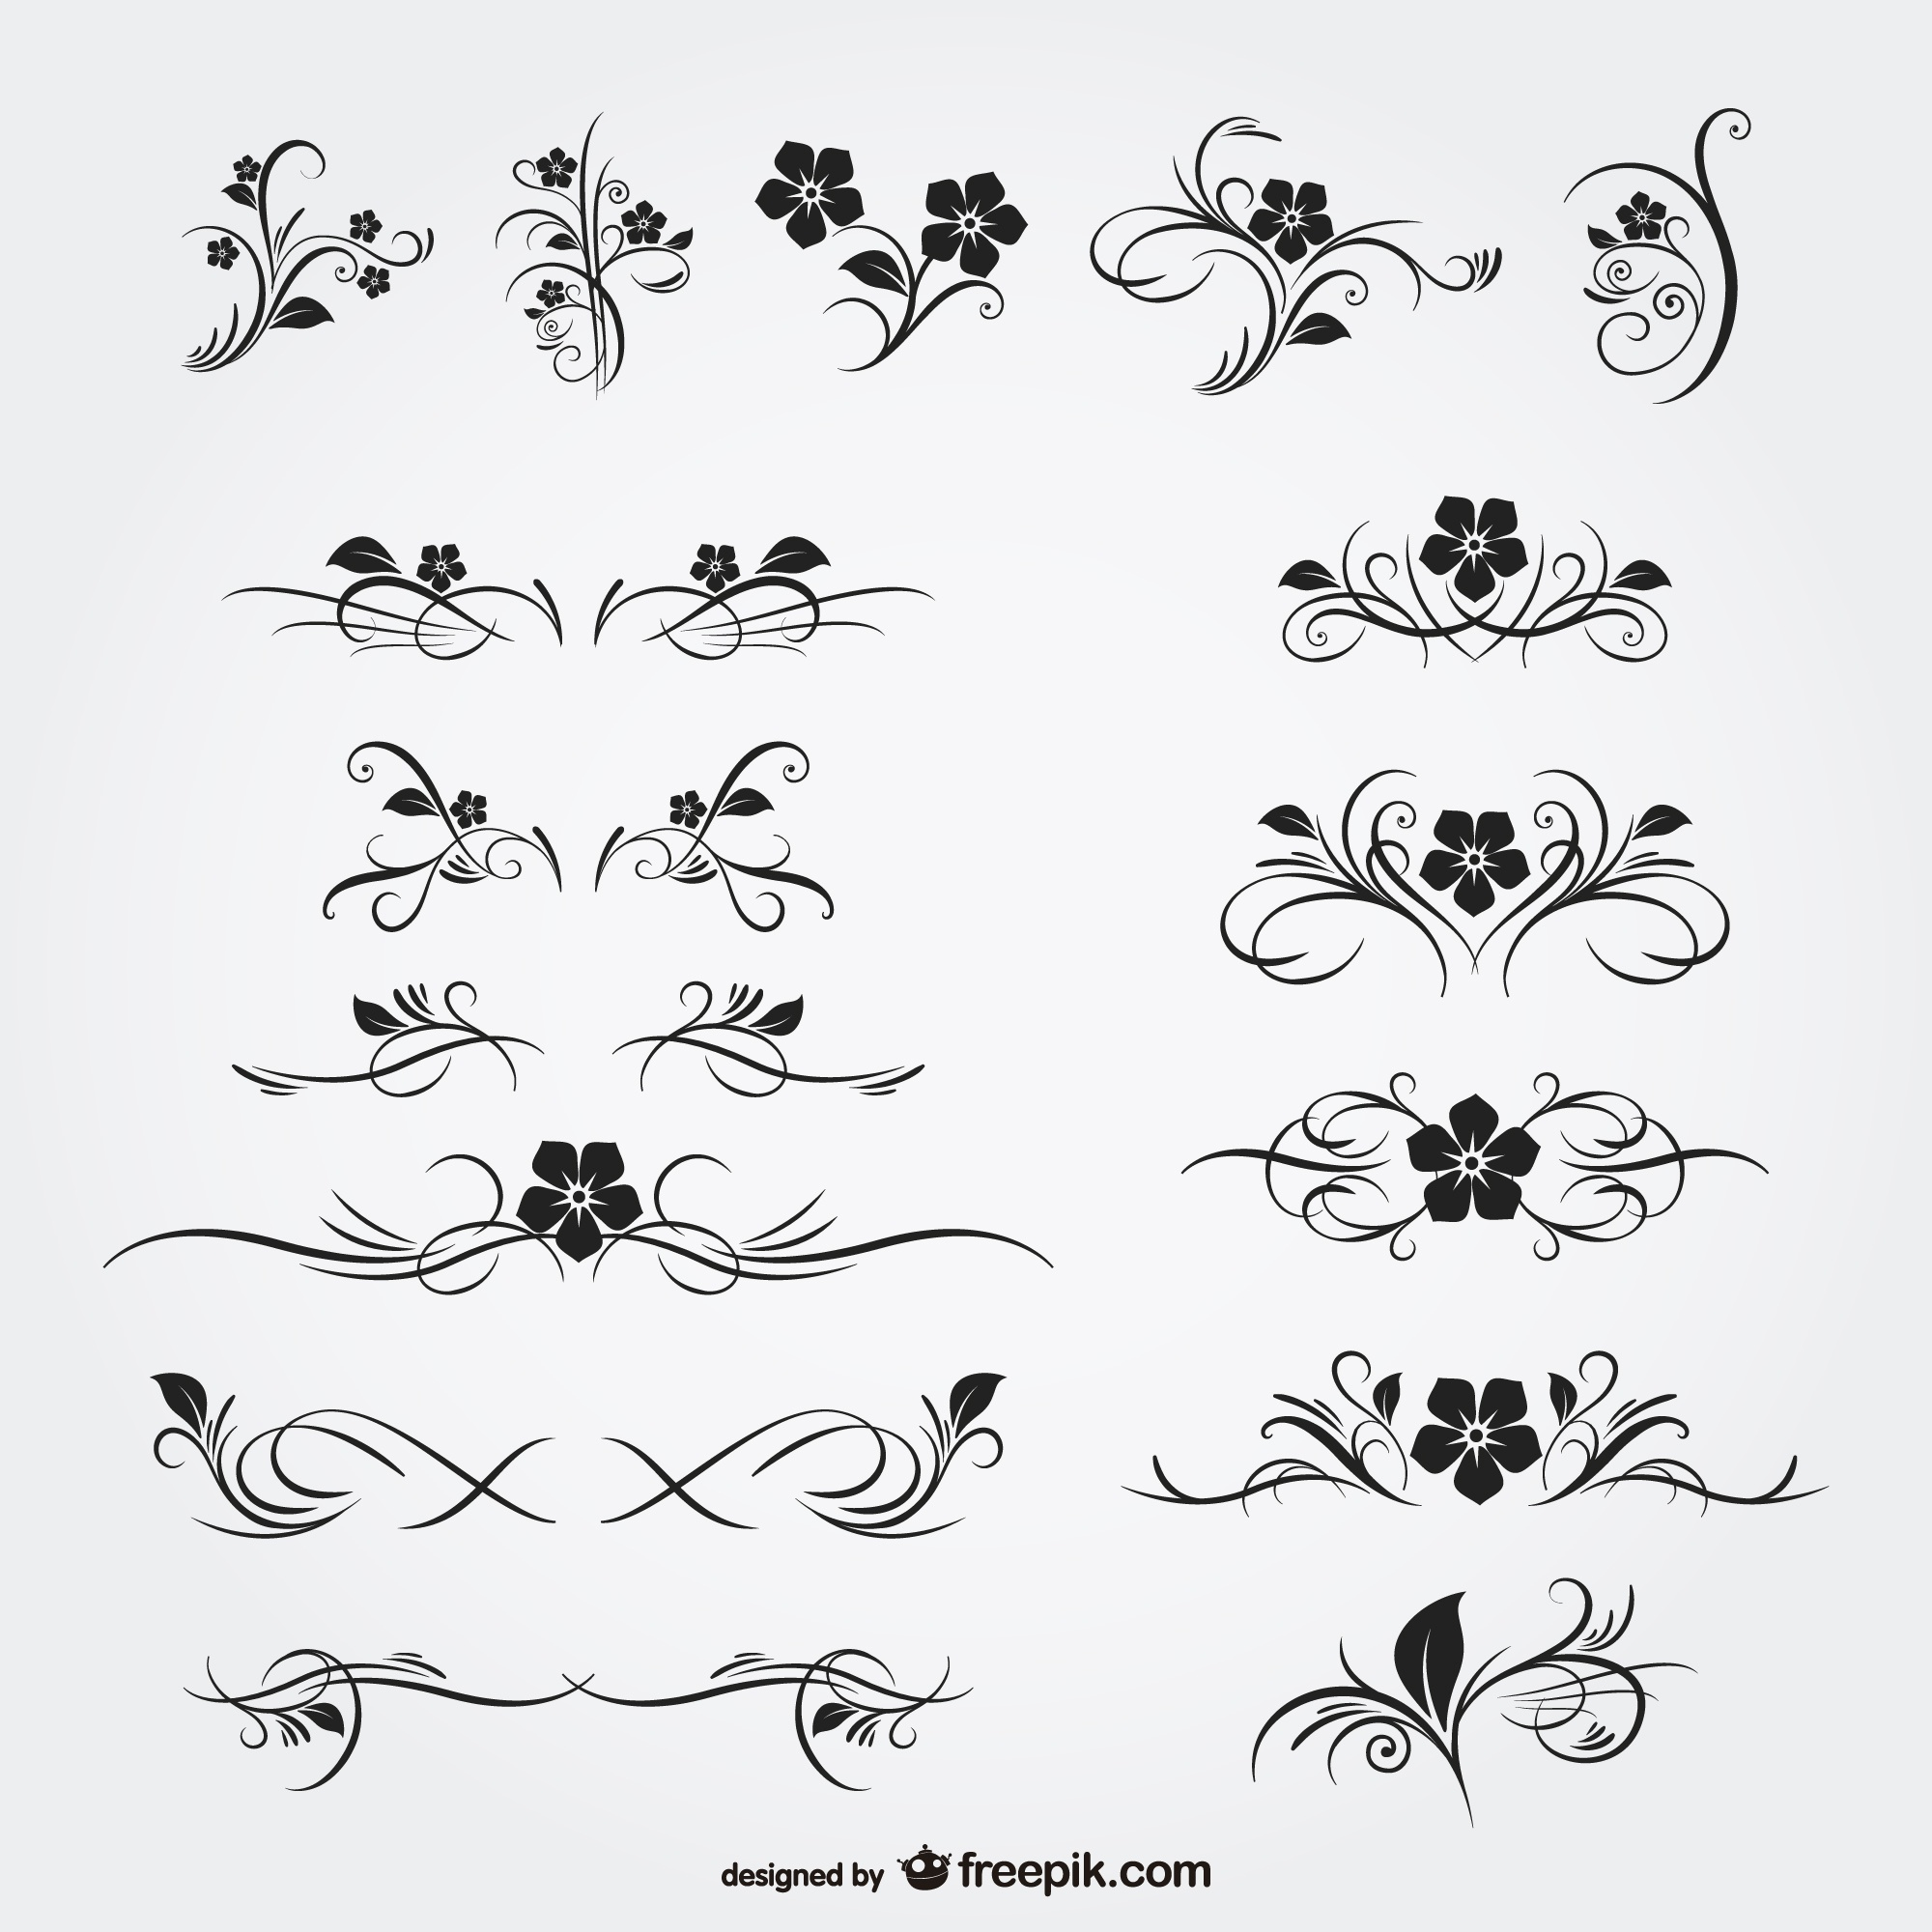 Floral ornaments free graphics